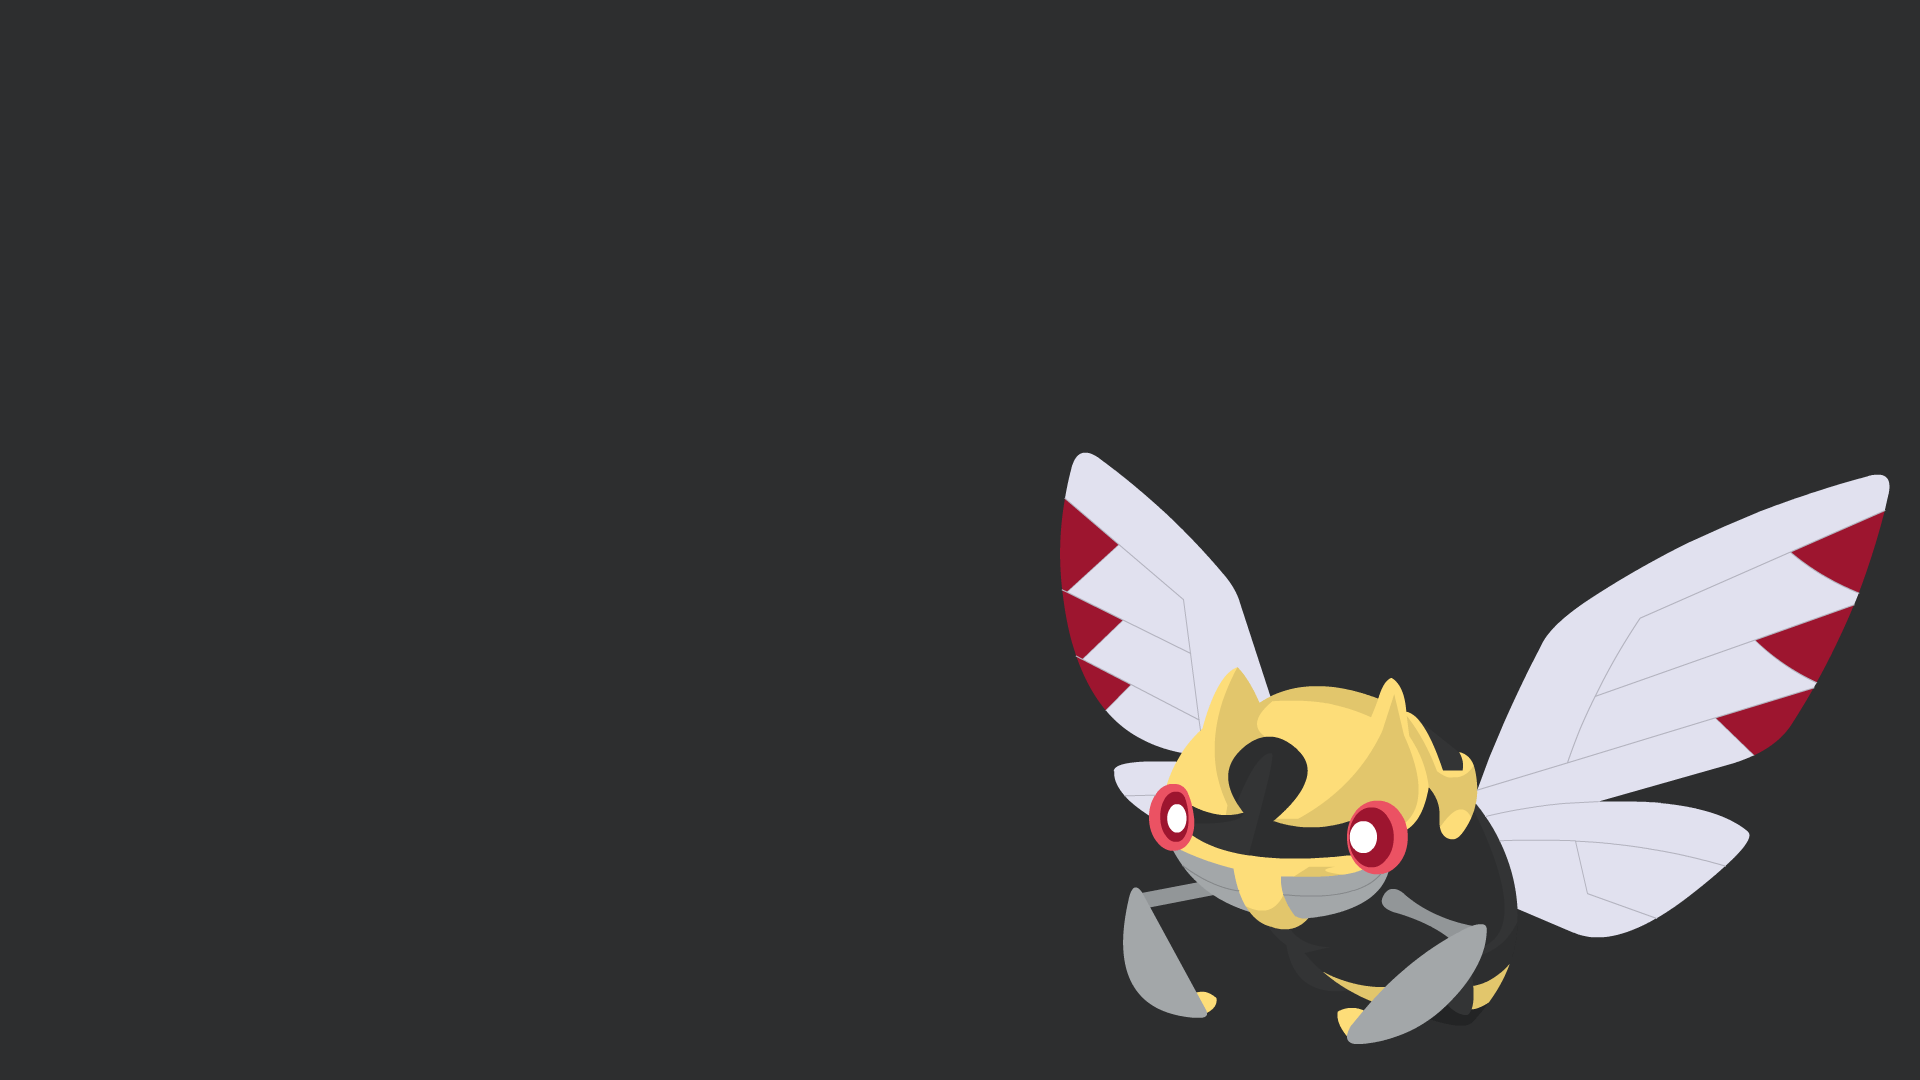 Ninjask Wallpapers 48223 1920x1080 px ~ HDWallSource